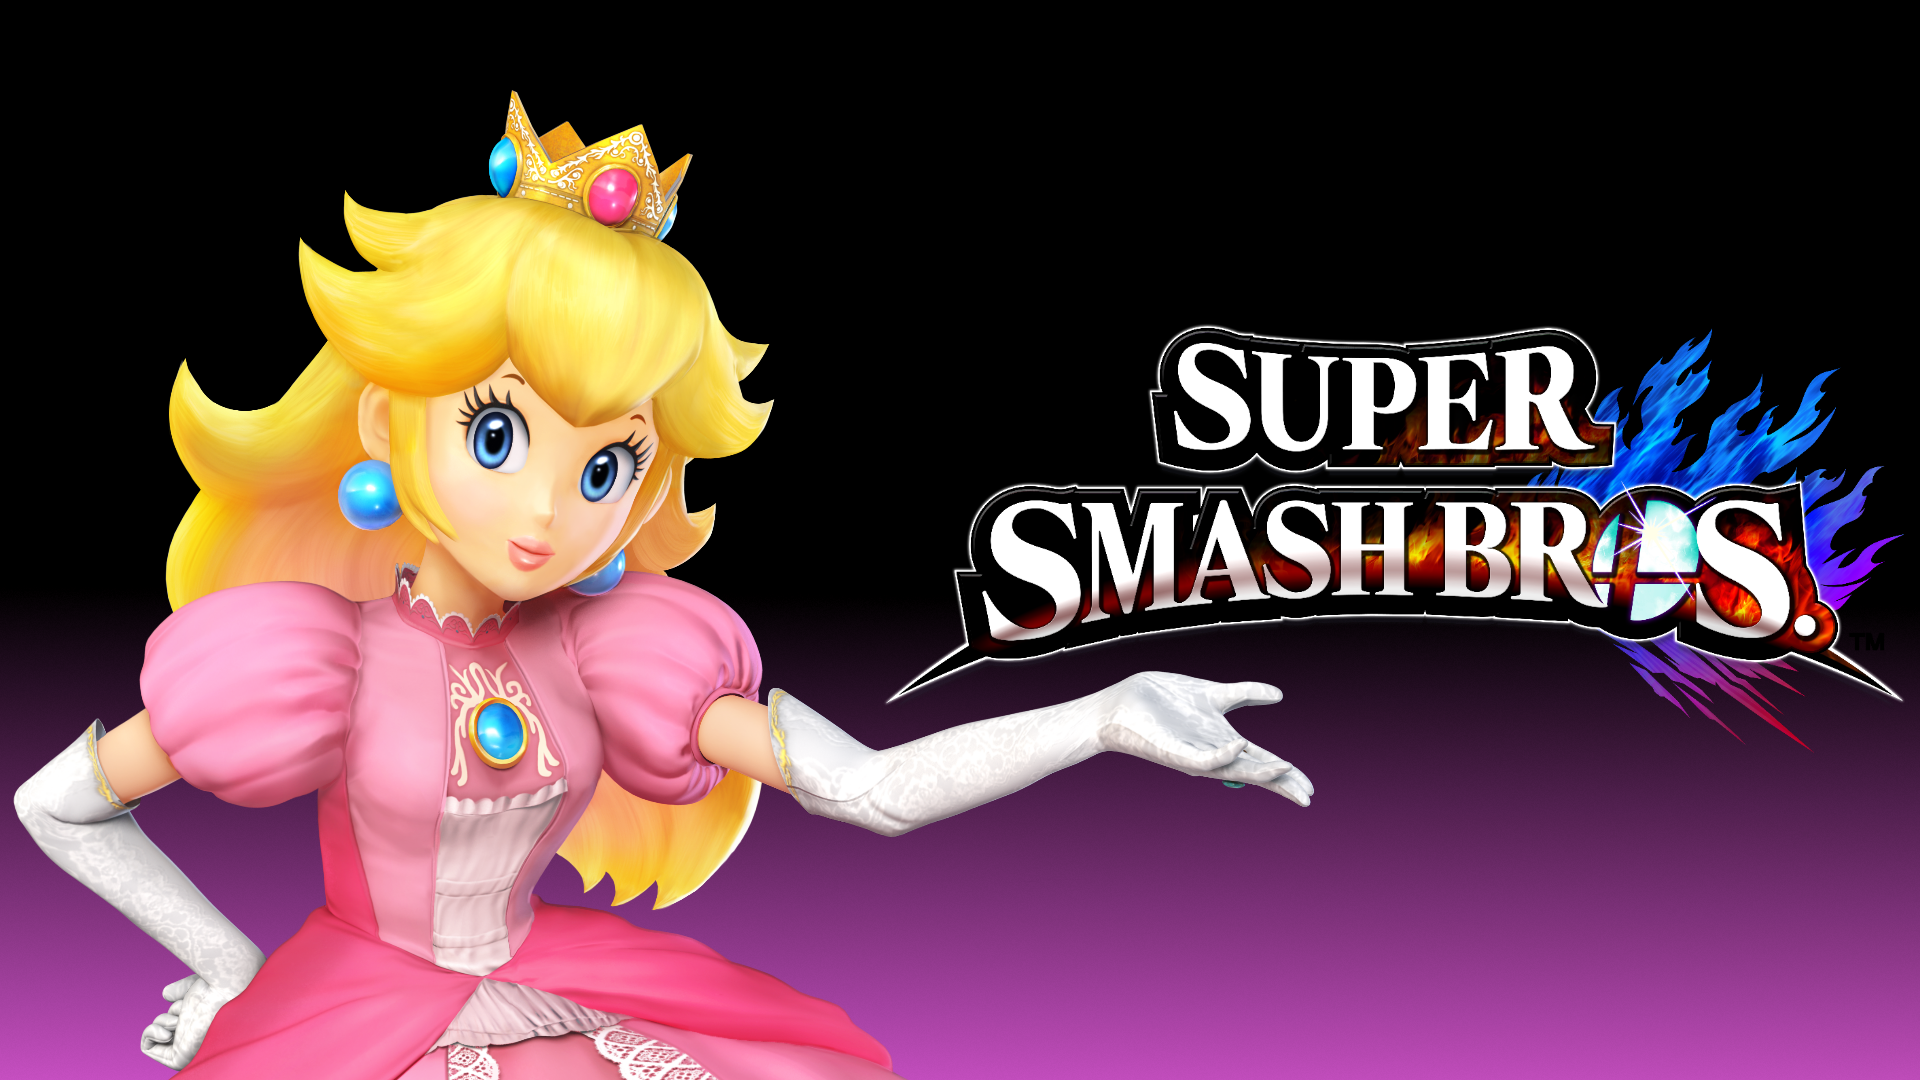 Free Super Smash Bros Hd Wallpaper Pixelstalk Net